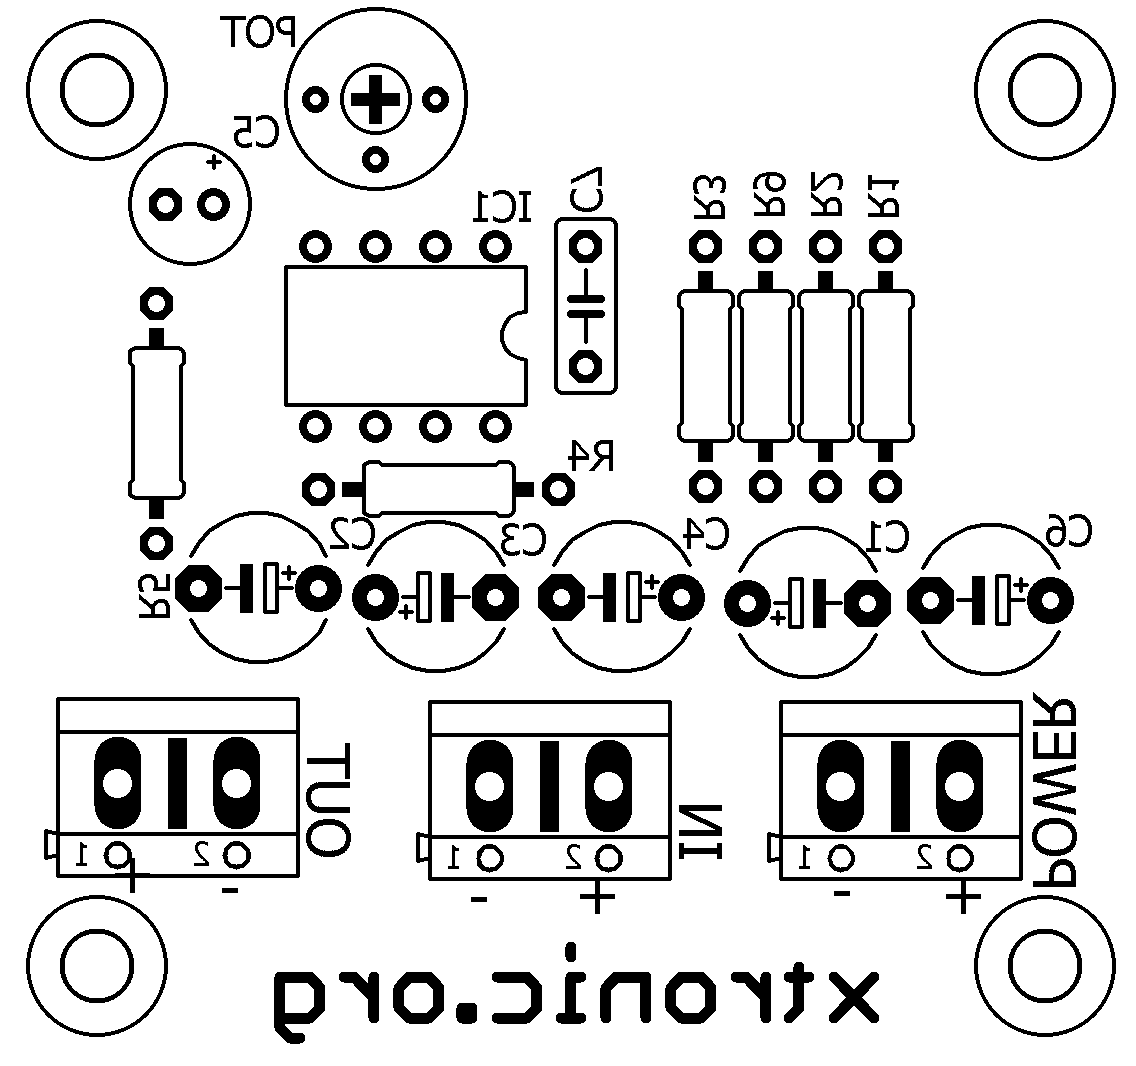 hight resolution of suggested pcb mount preamp